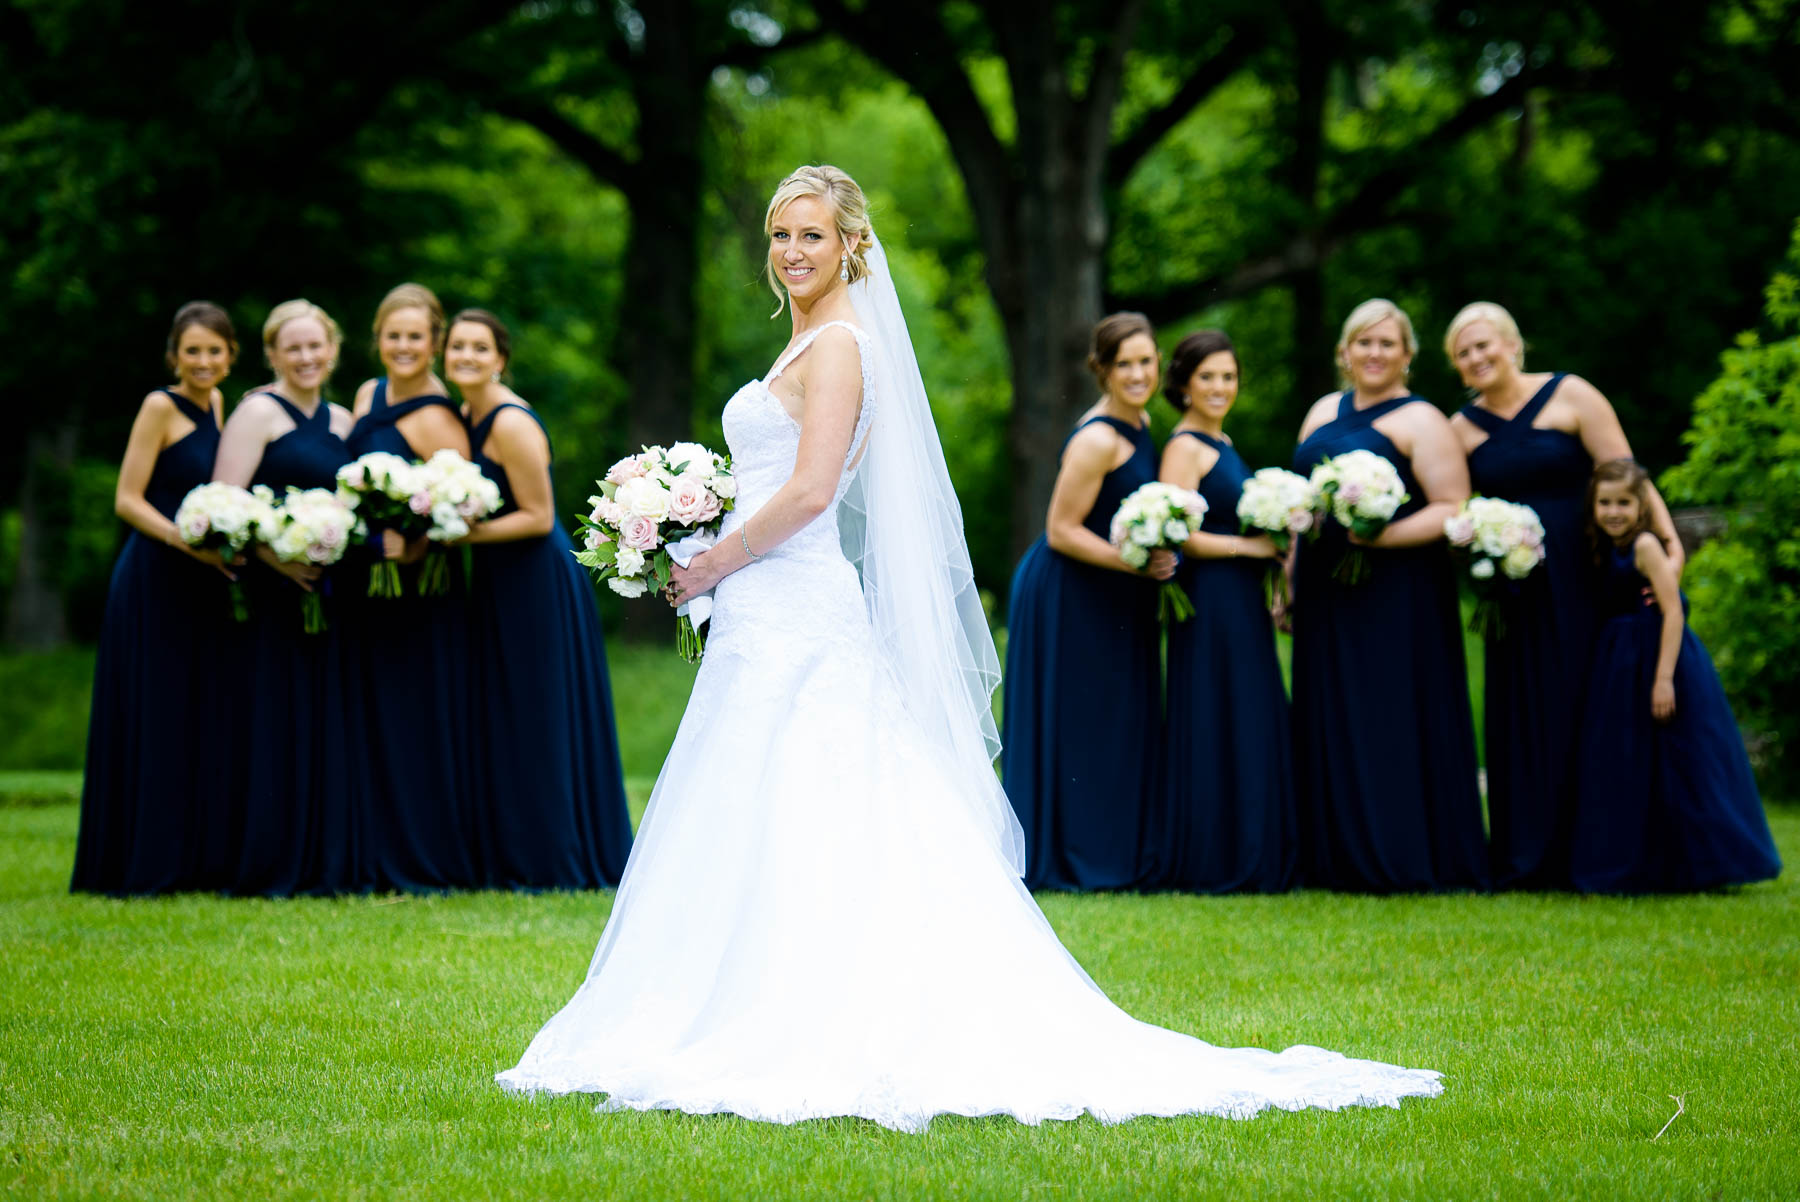 Bride and bridesmaids at the St. Charles Country Club.